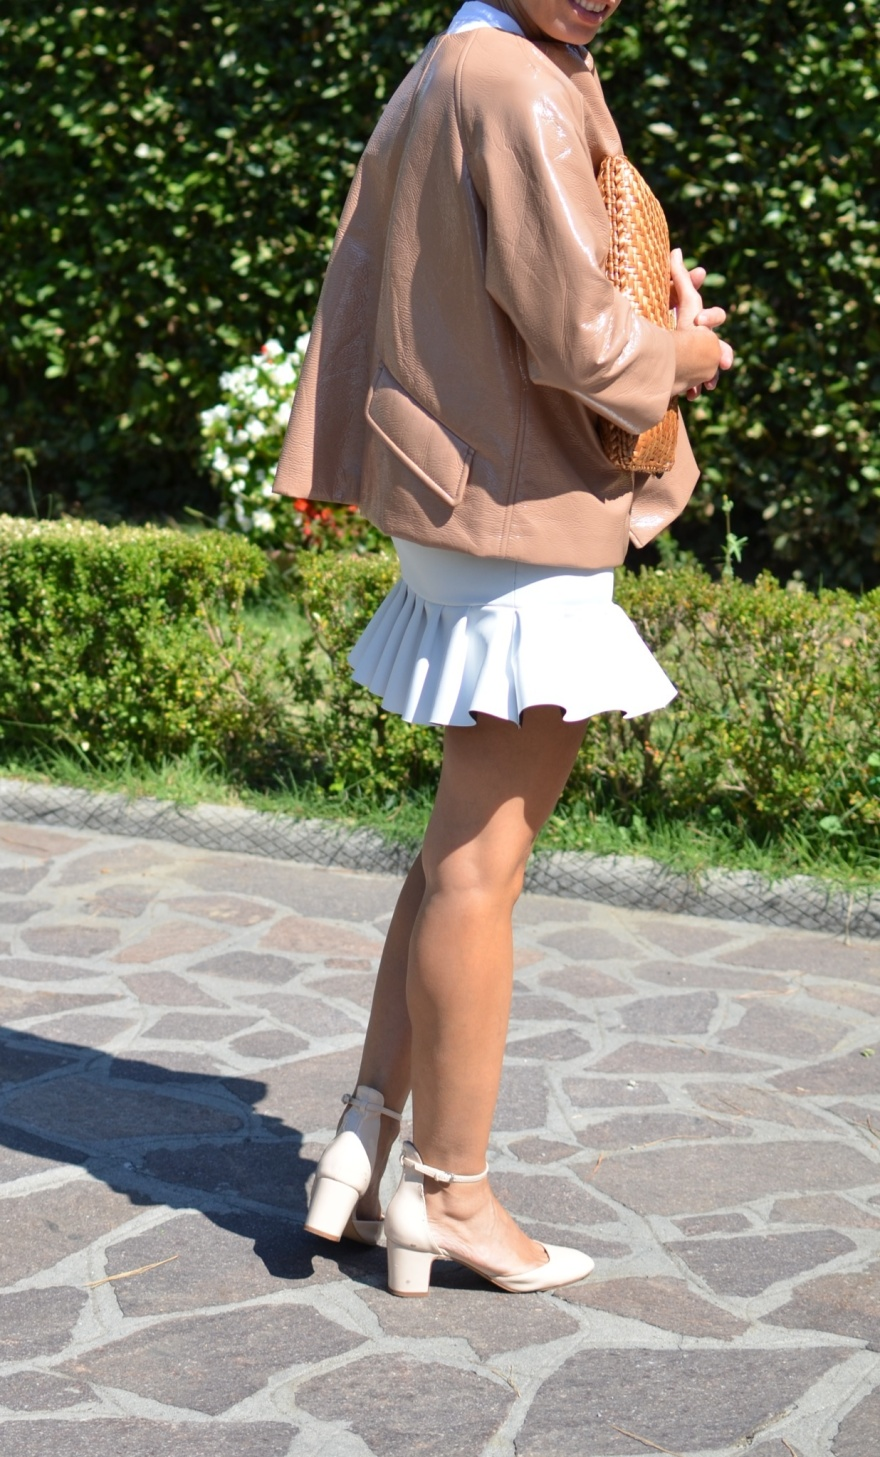 White skirt, skirt, gommage, pink jacket, leather jacket, vintage outfit, Anastasia, mysouldress, new outfit, fashion blogger, fashion, cool outfit, pink sandals, Zara shoes